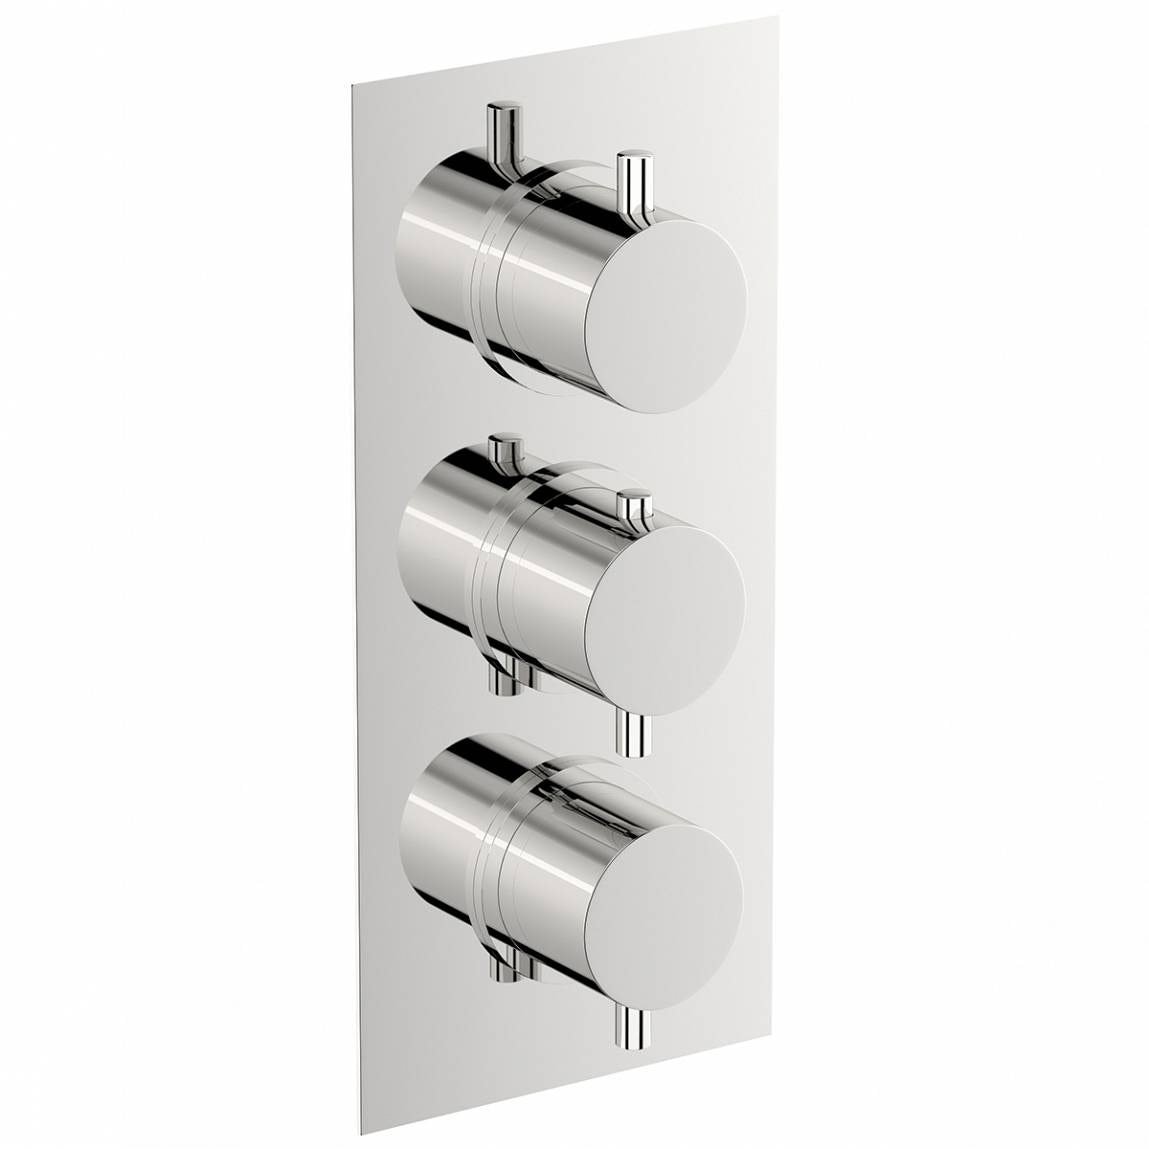 Mode Matrix square triple thermostatic shower valve with diverter